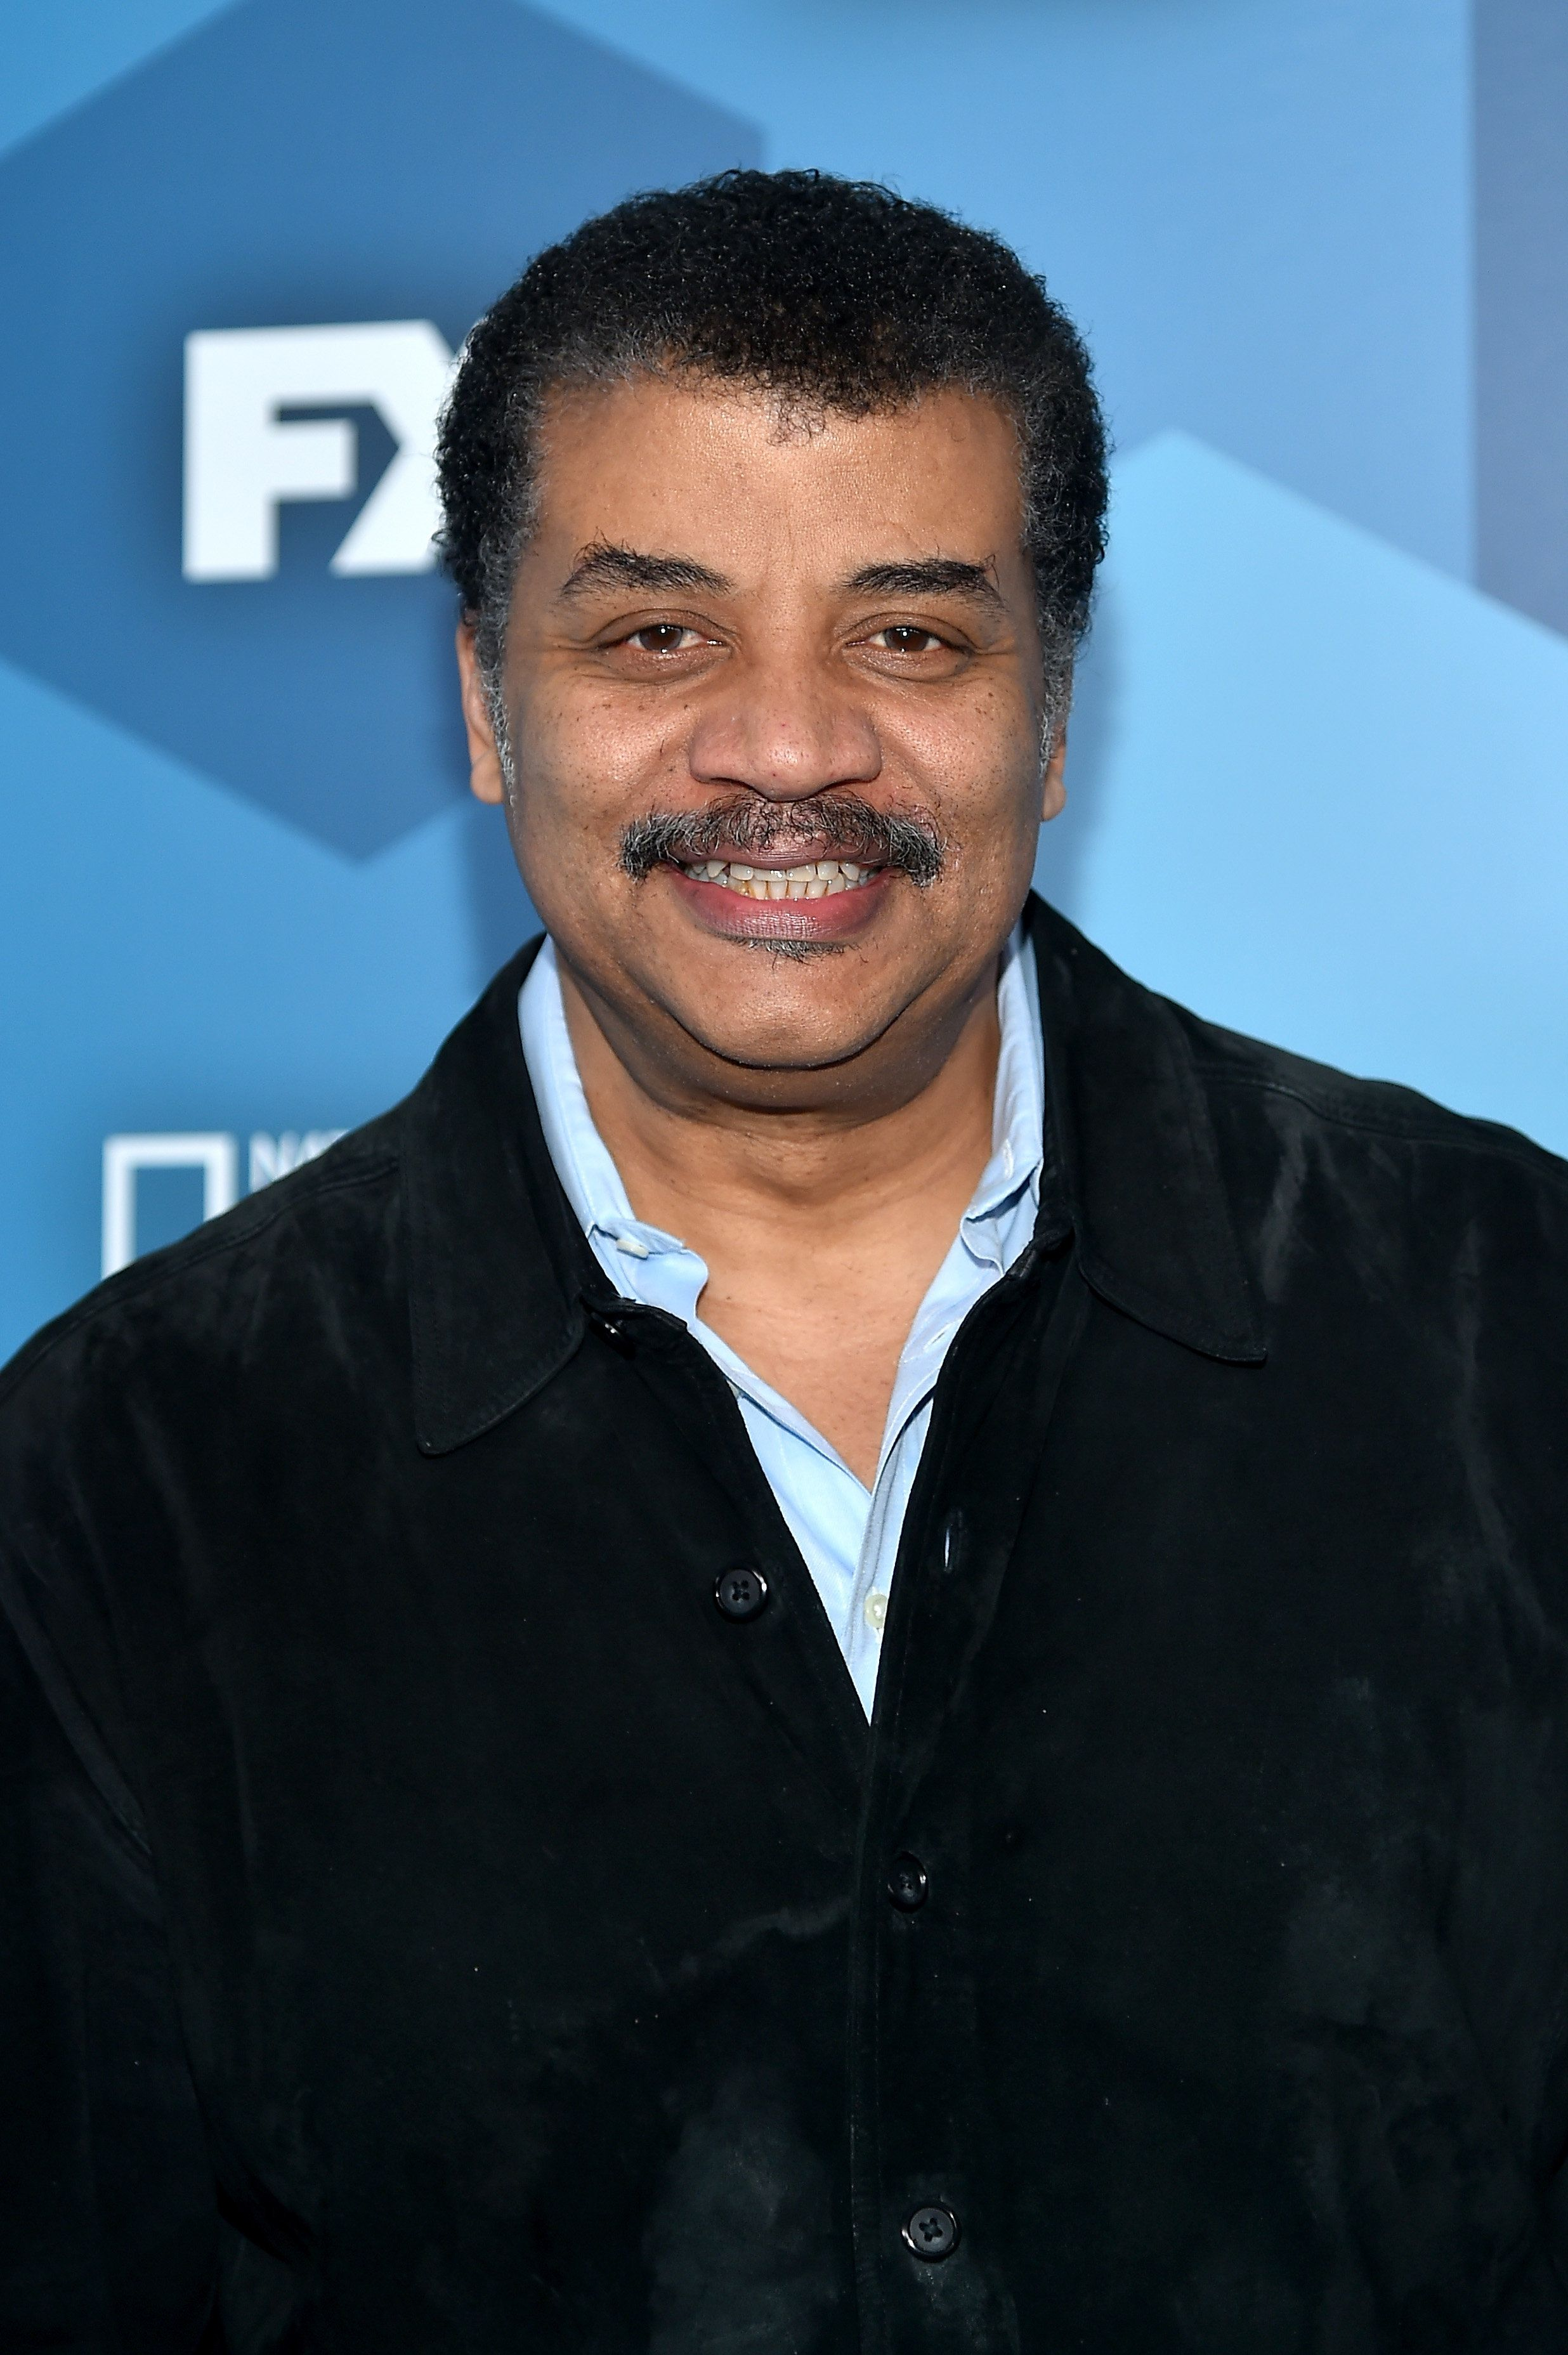 NEW YORK, NY - MAY 16:  Neil deGrasse Tyson attends FOX 2016 Upfront at Wollman Rink on May 16, 2016 in New York City.  (Photo by Ben Gabbe/Getty Images)